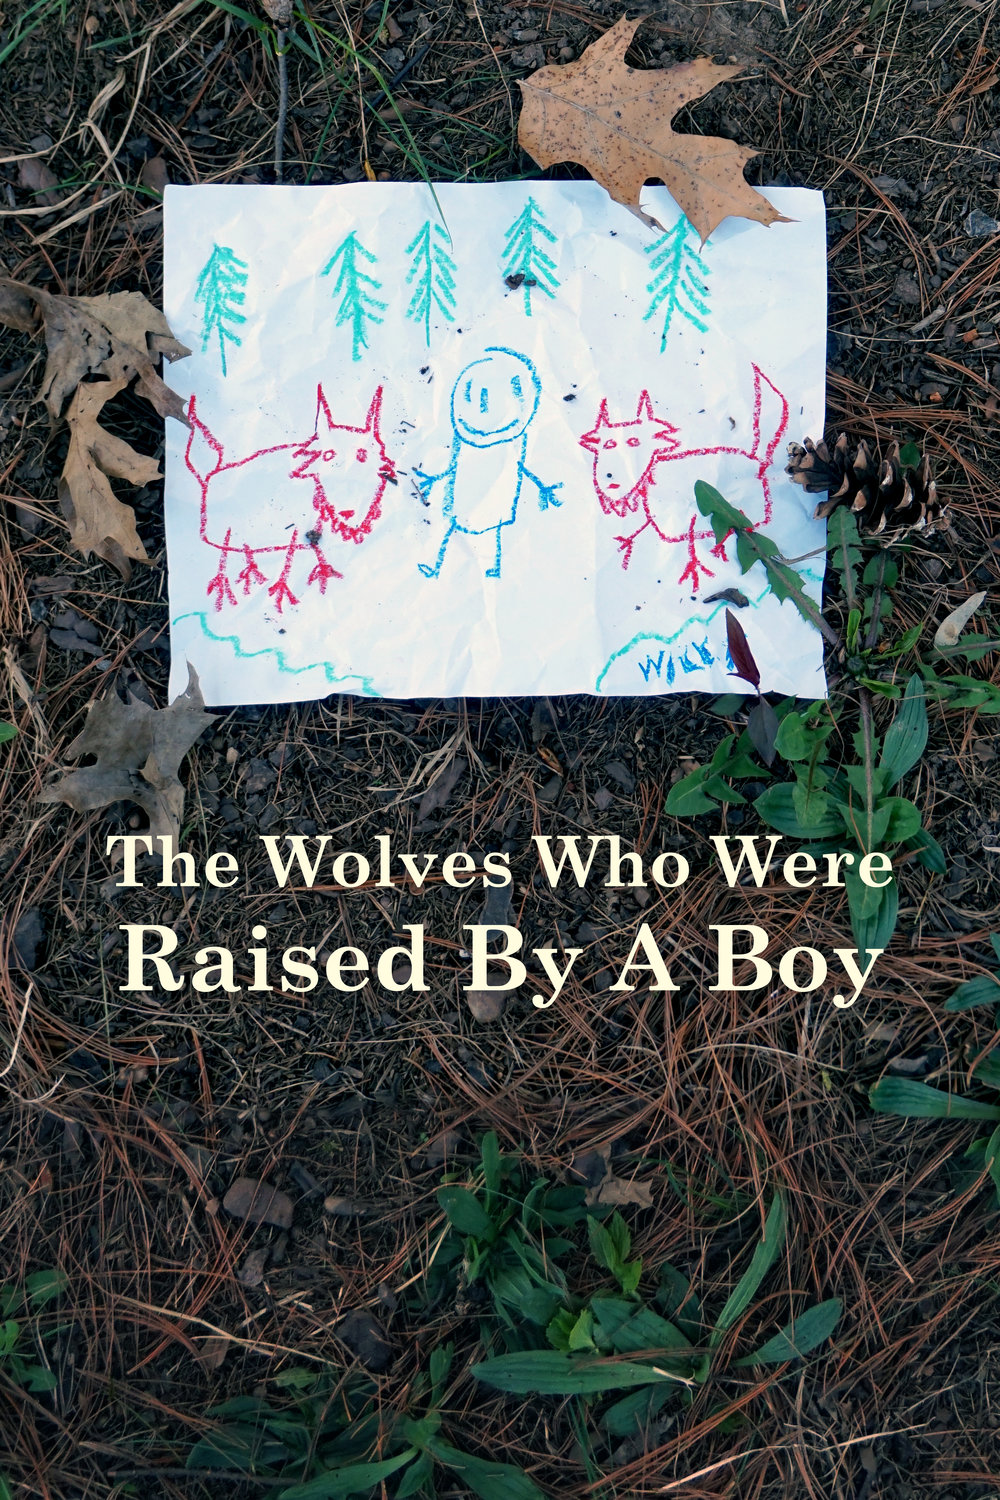 The documentary follows Will Finch, a boy abandoned by his parents in the Alaskan Wilderness who discovered a wolf packand taught them important lessons about survival and Axe body spray.